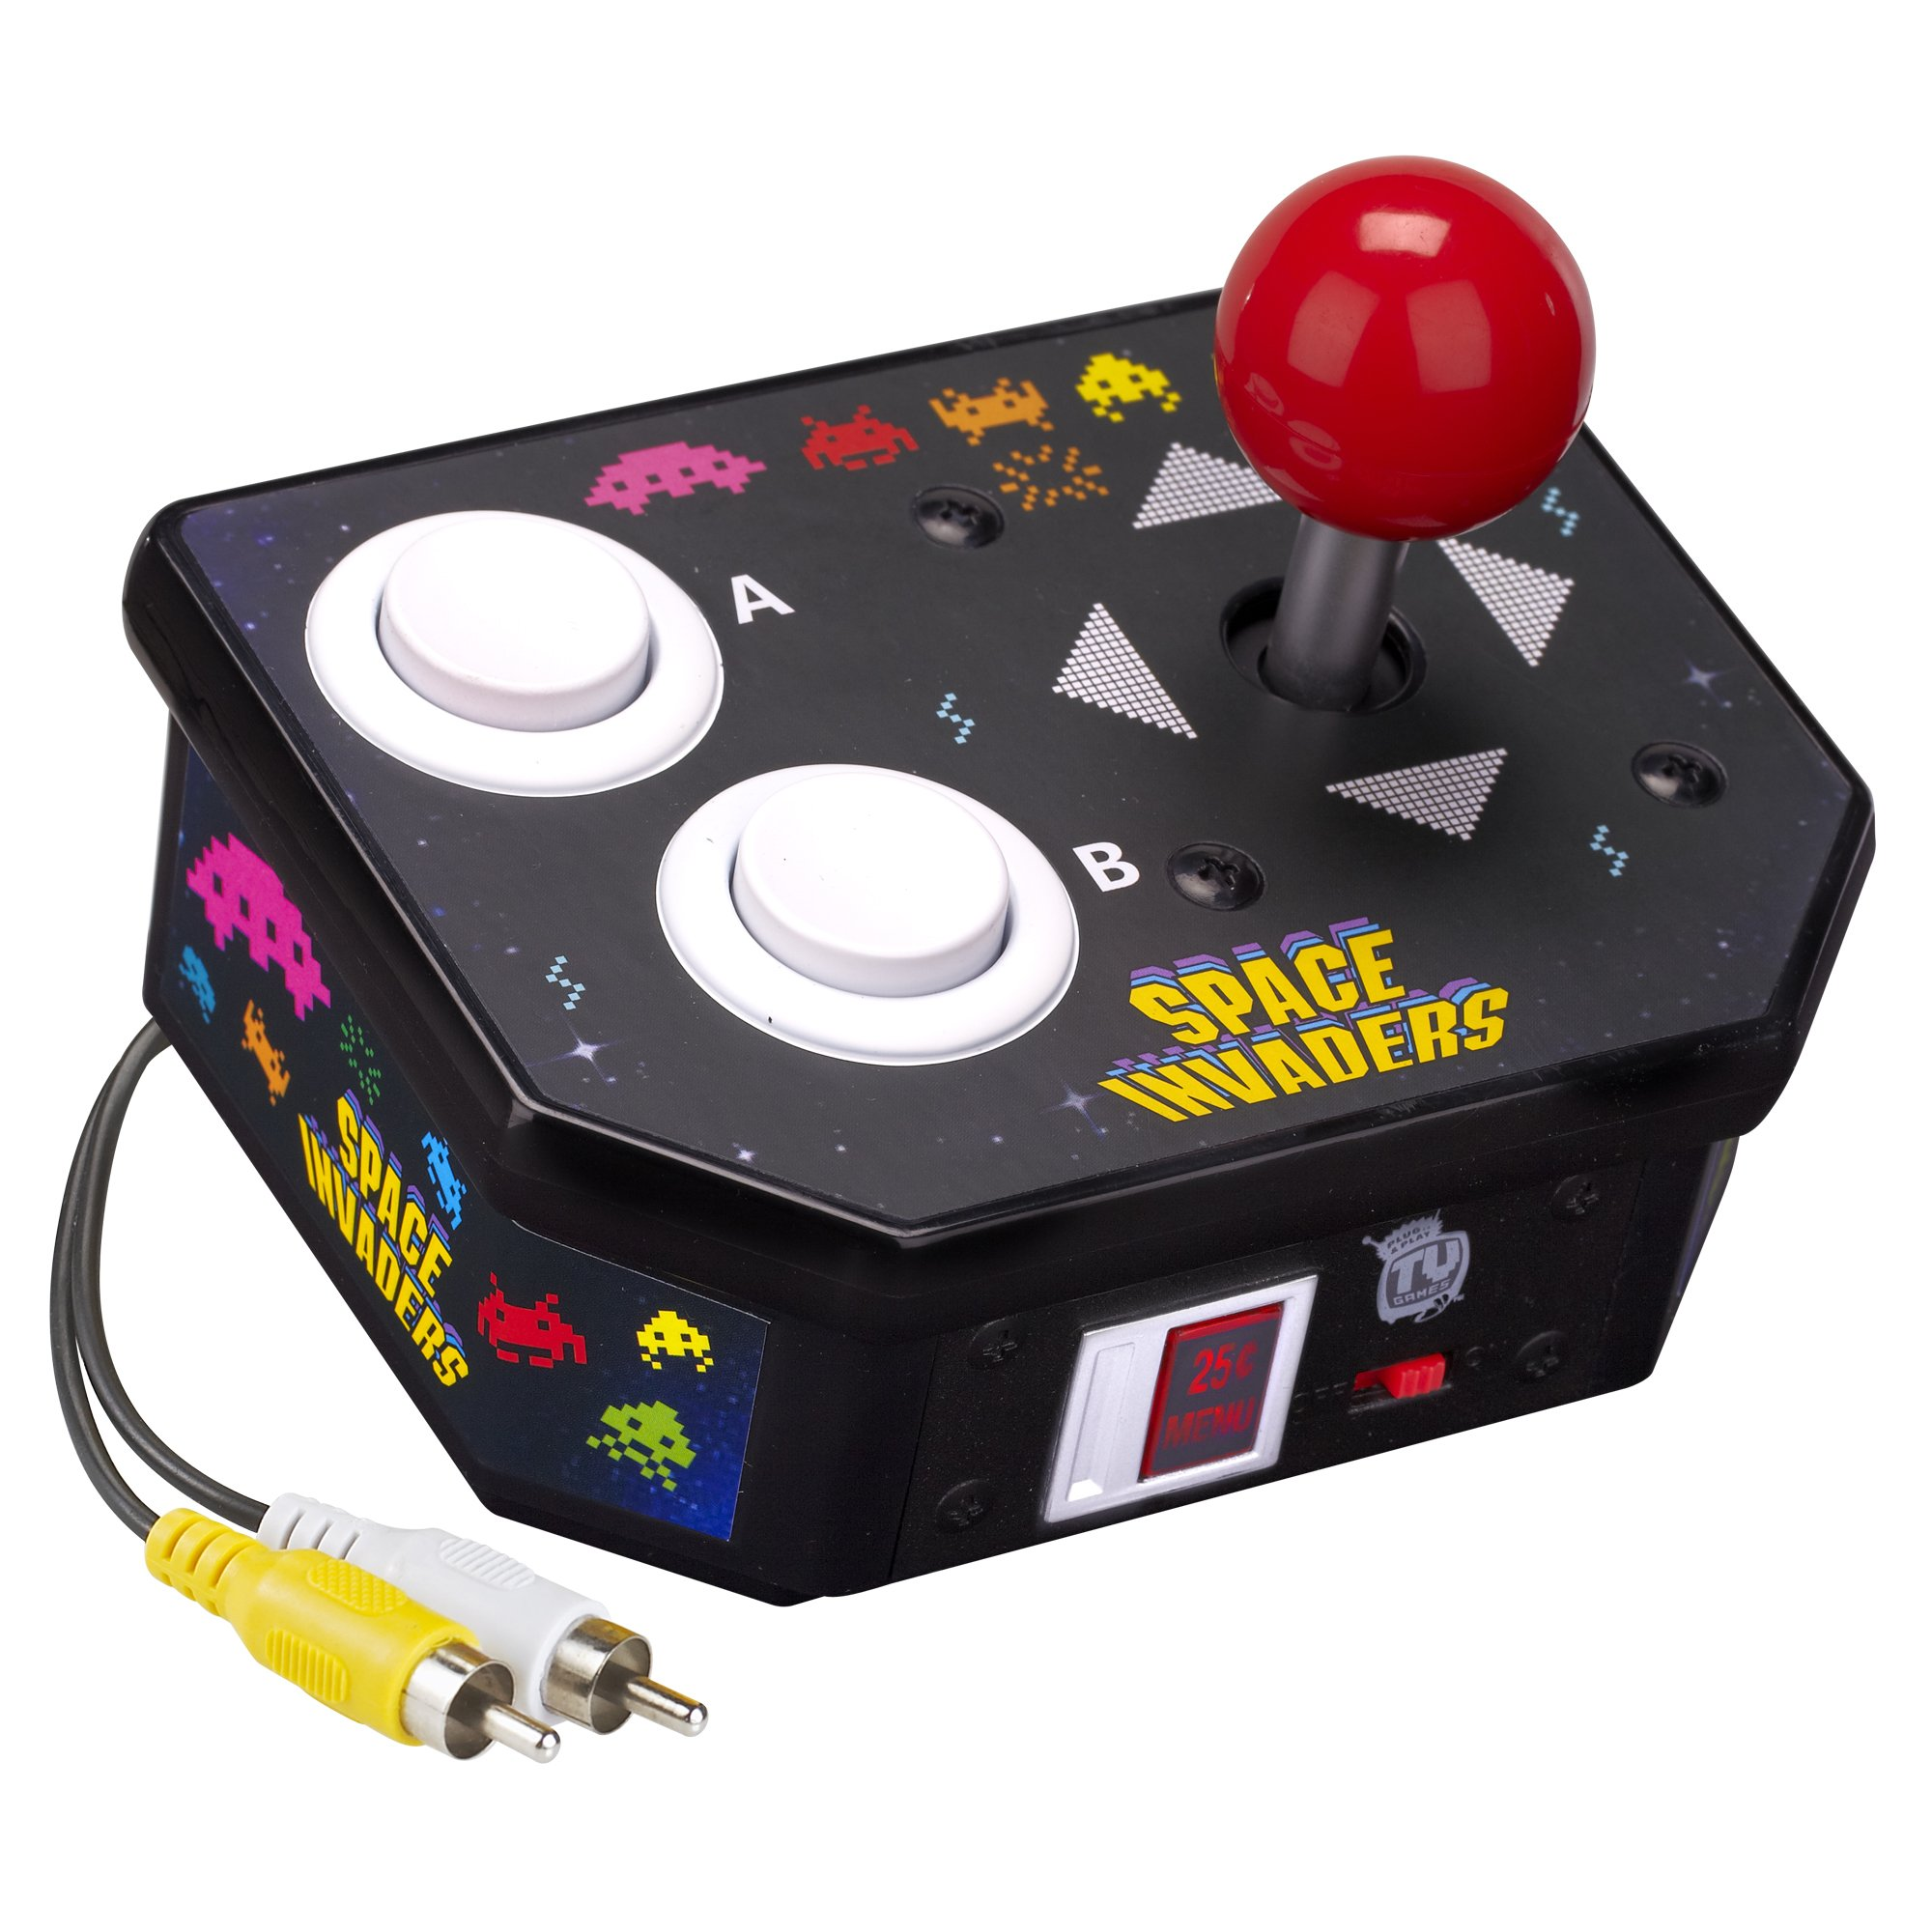 Space Invaders TV Game